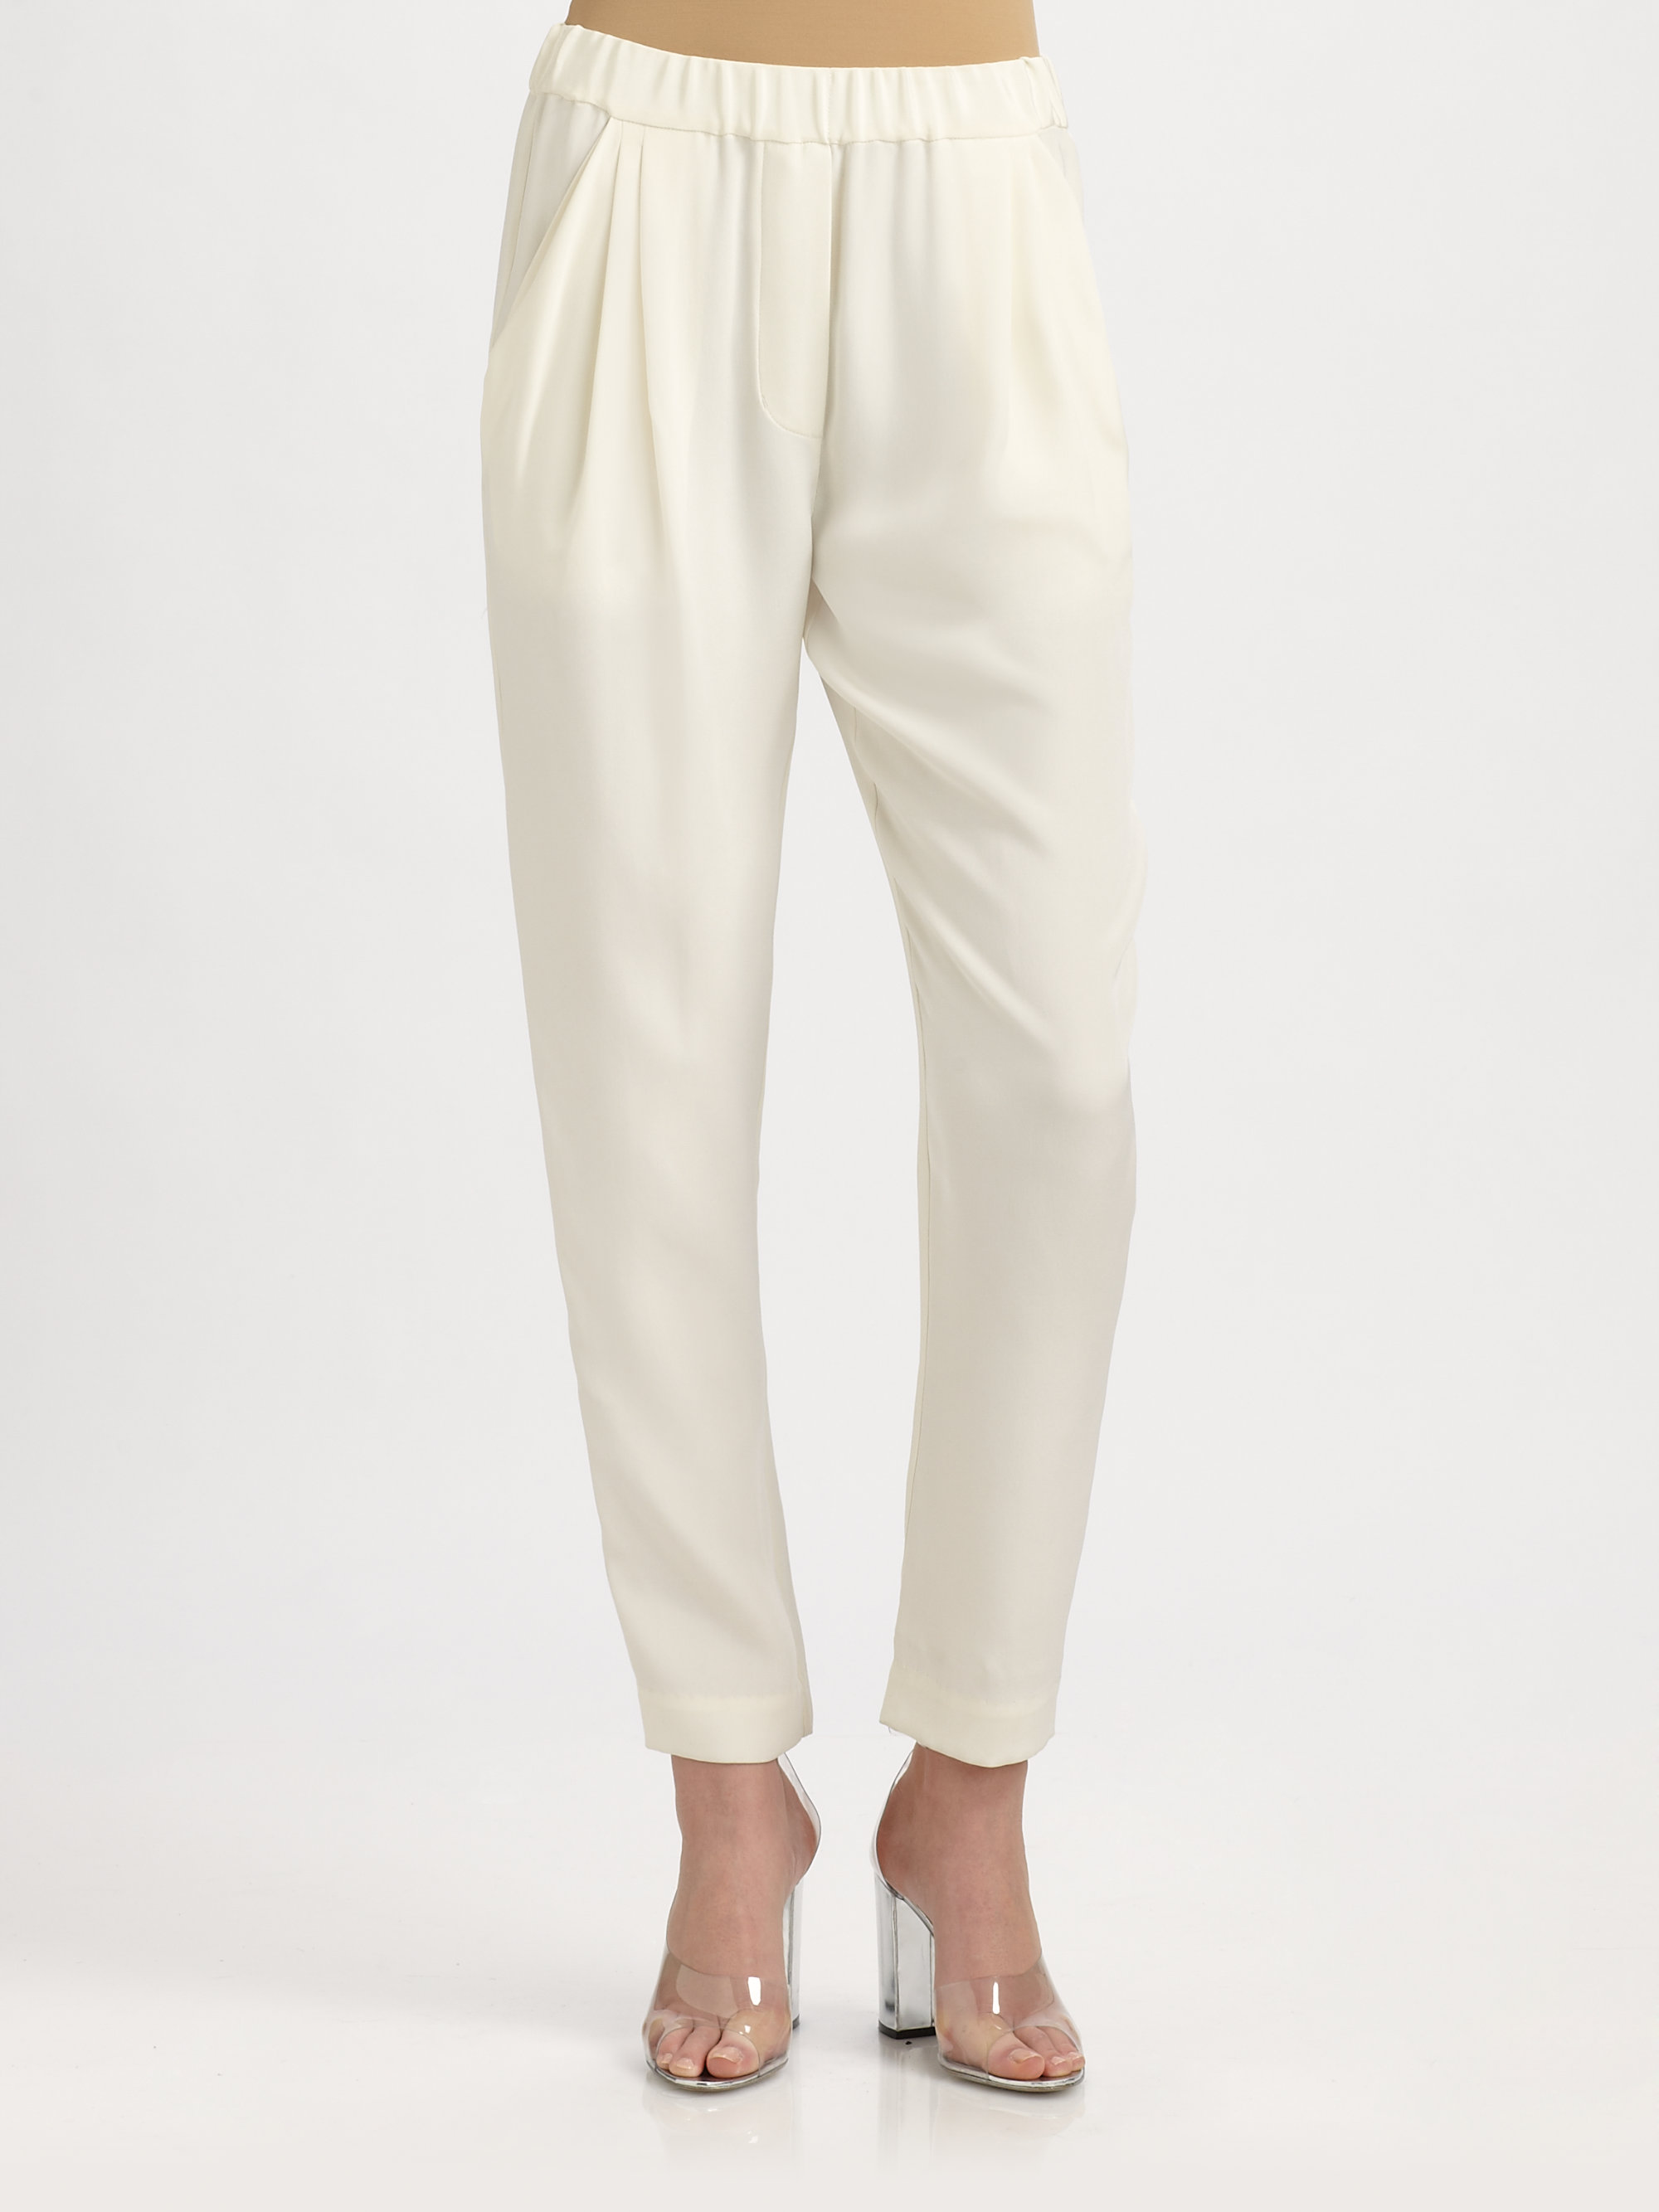 3.1 phillip lim Silk Ankle Pants in White | Lyst